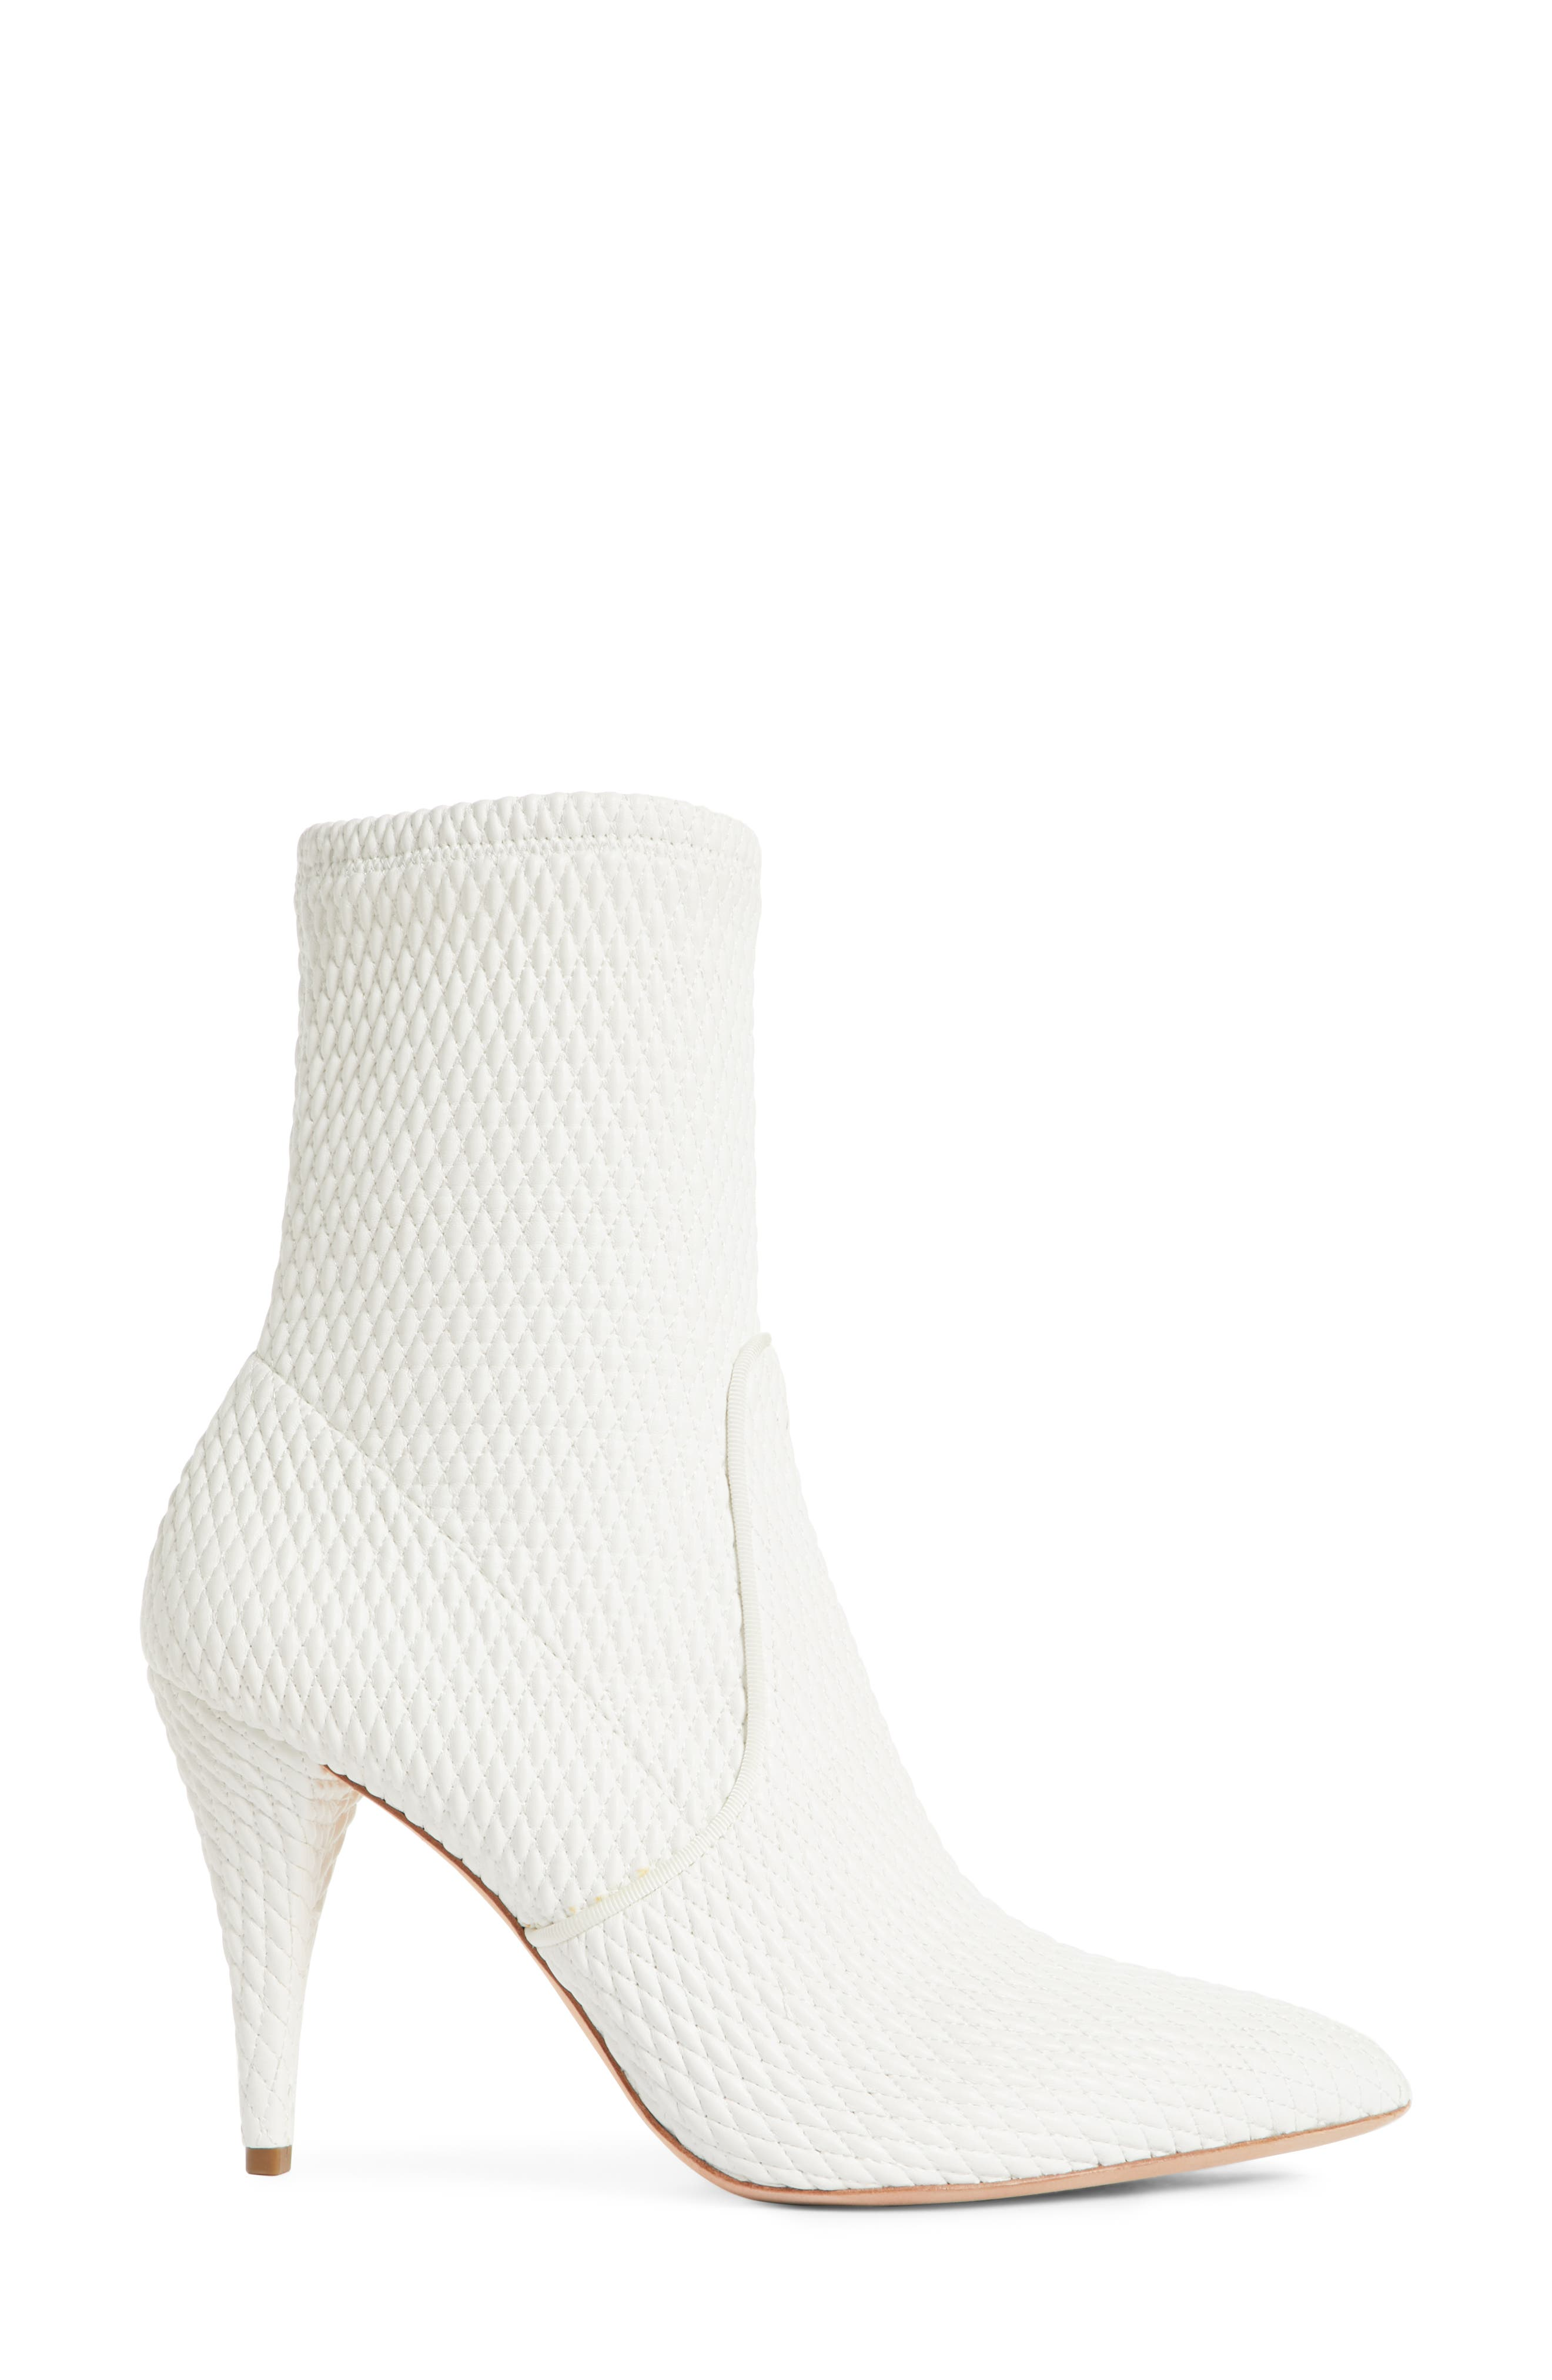 Hedde Pointy Toe Bootie,                             Alternate thumbnail 3, color,                             White